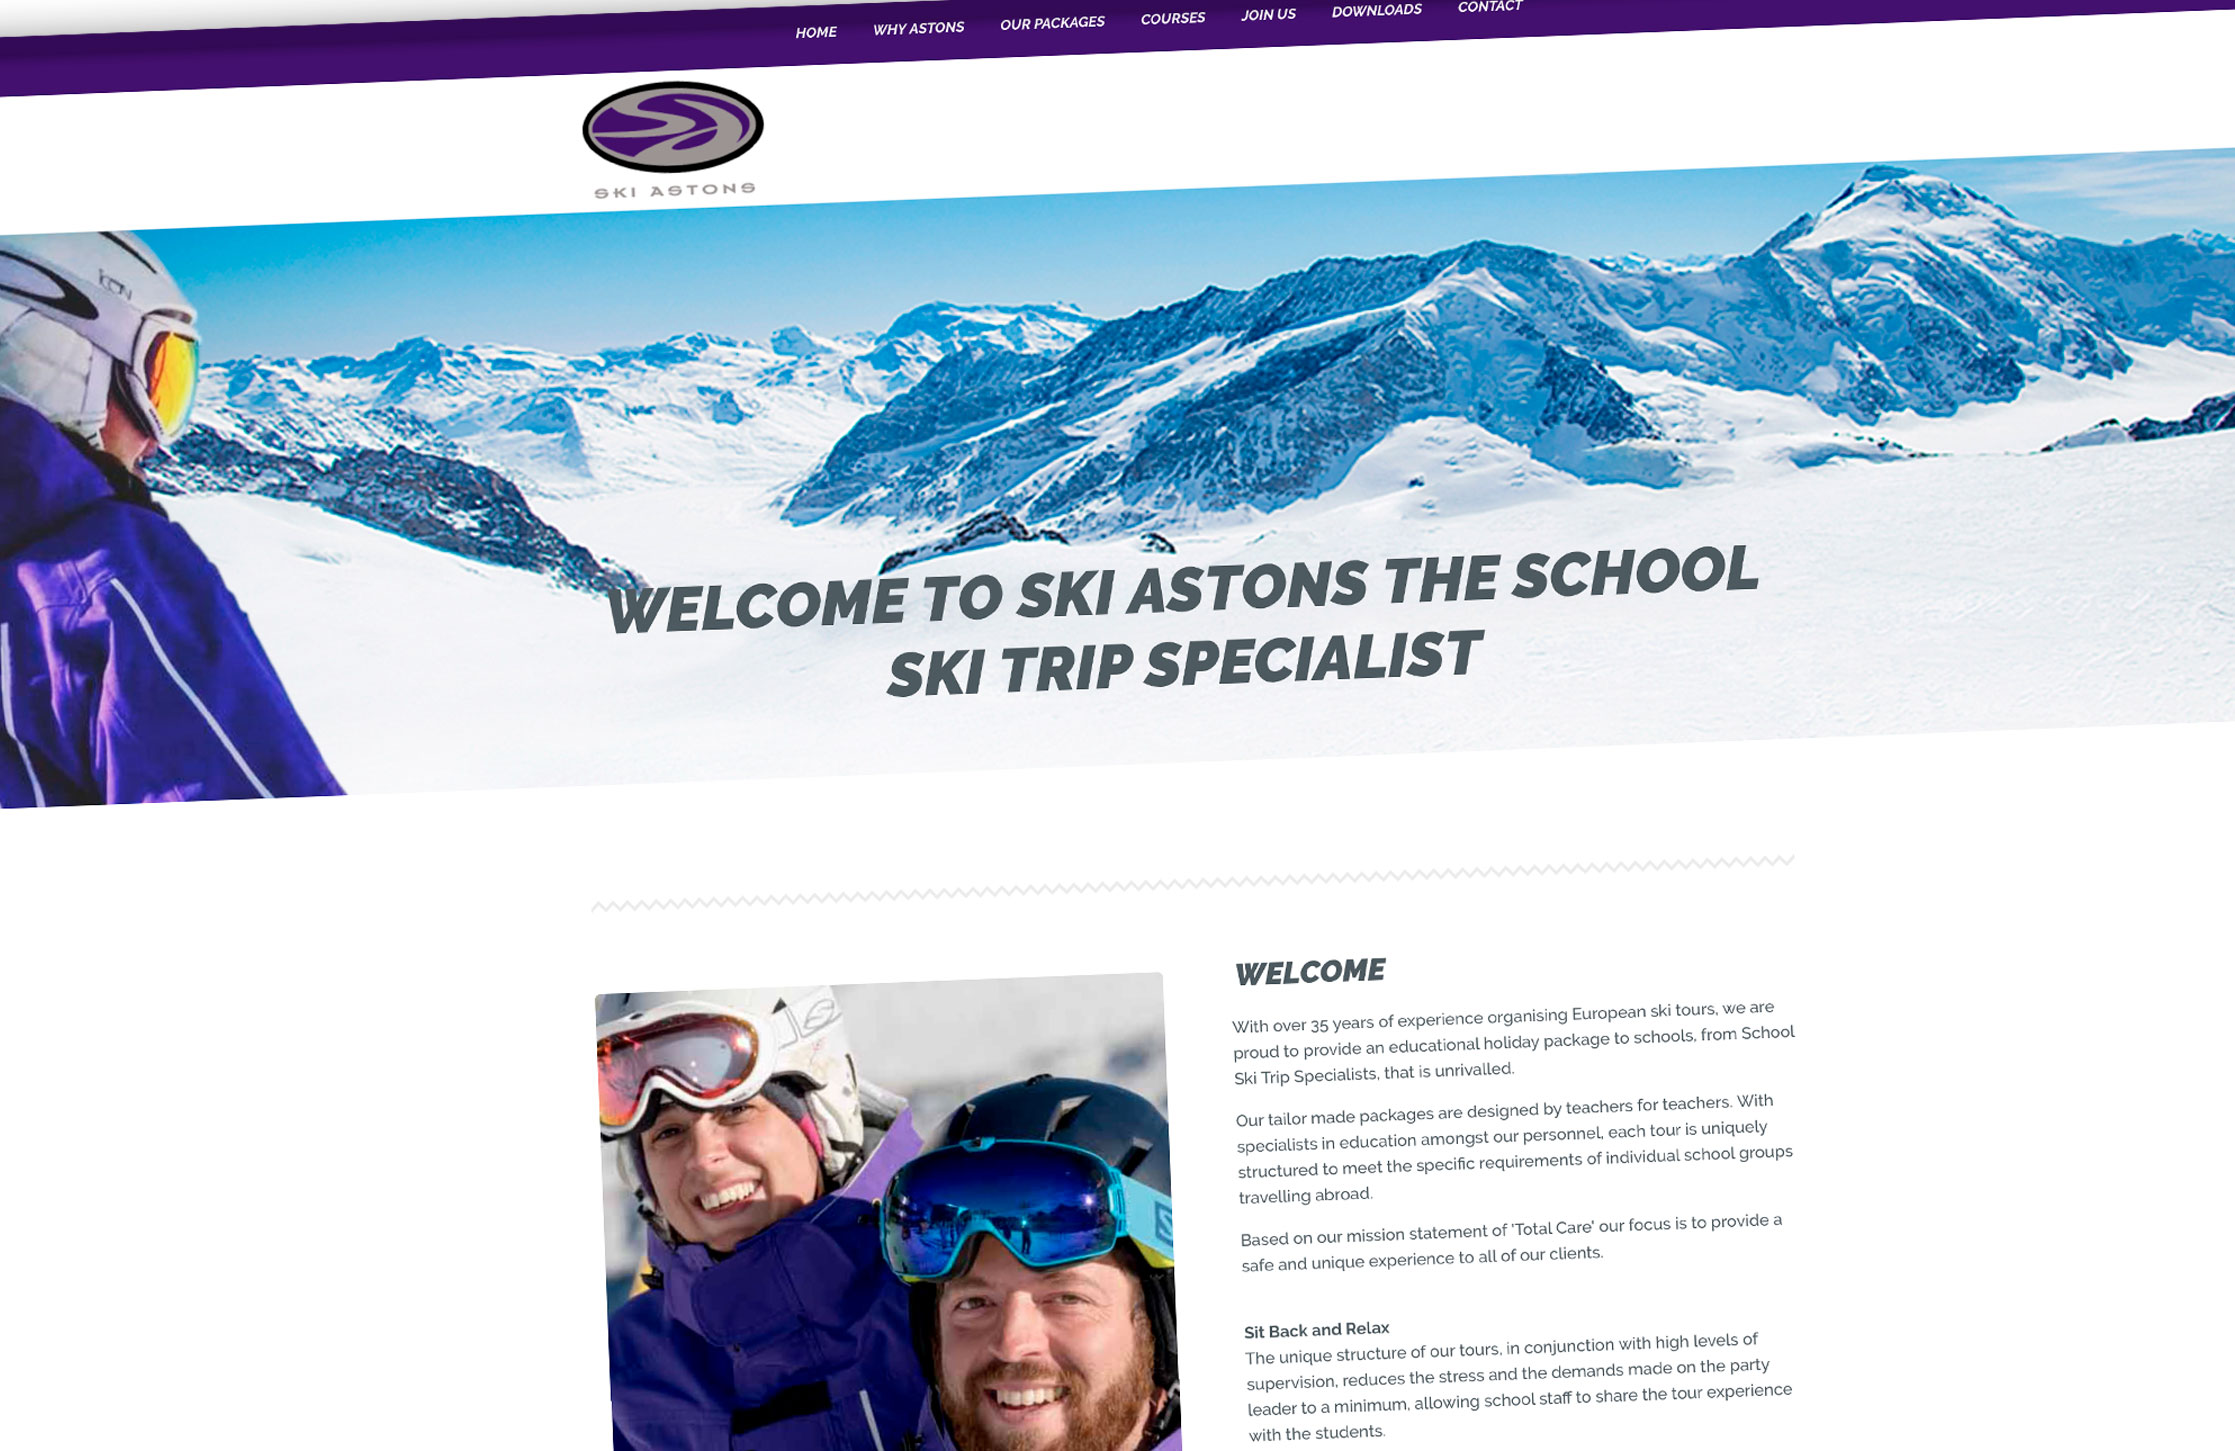 Skiastons website - the school ski trip specialist